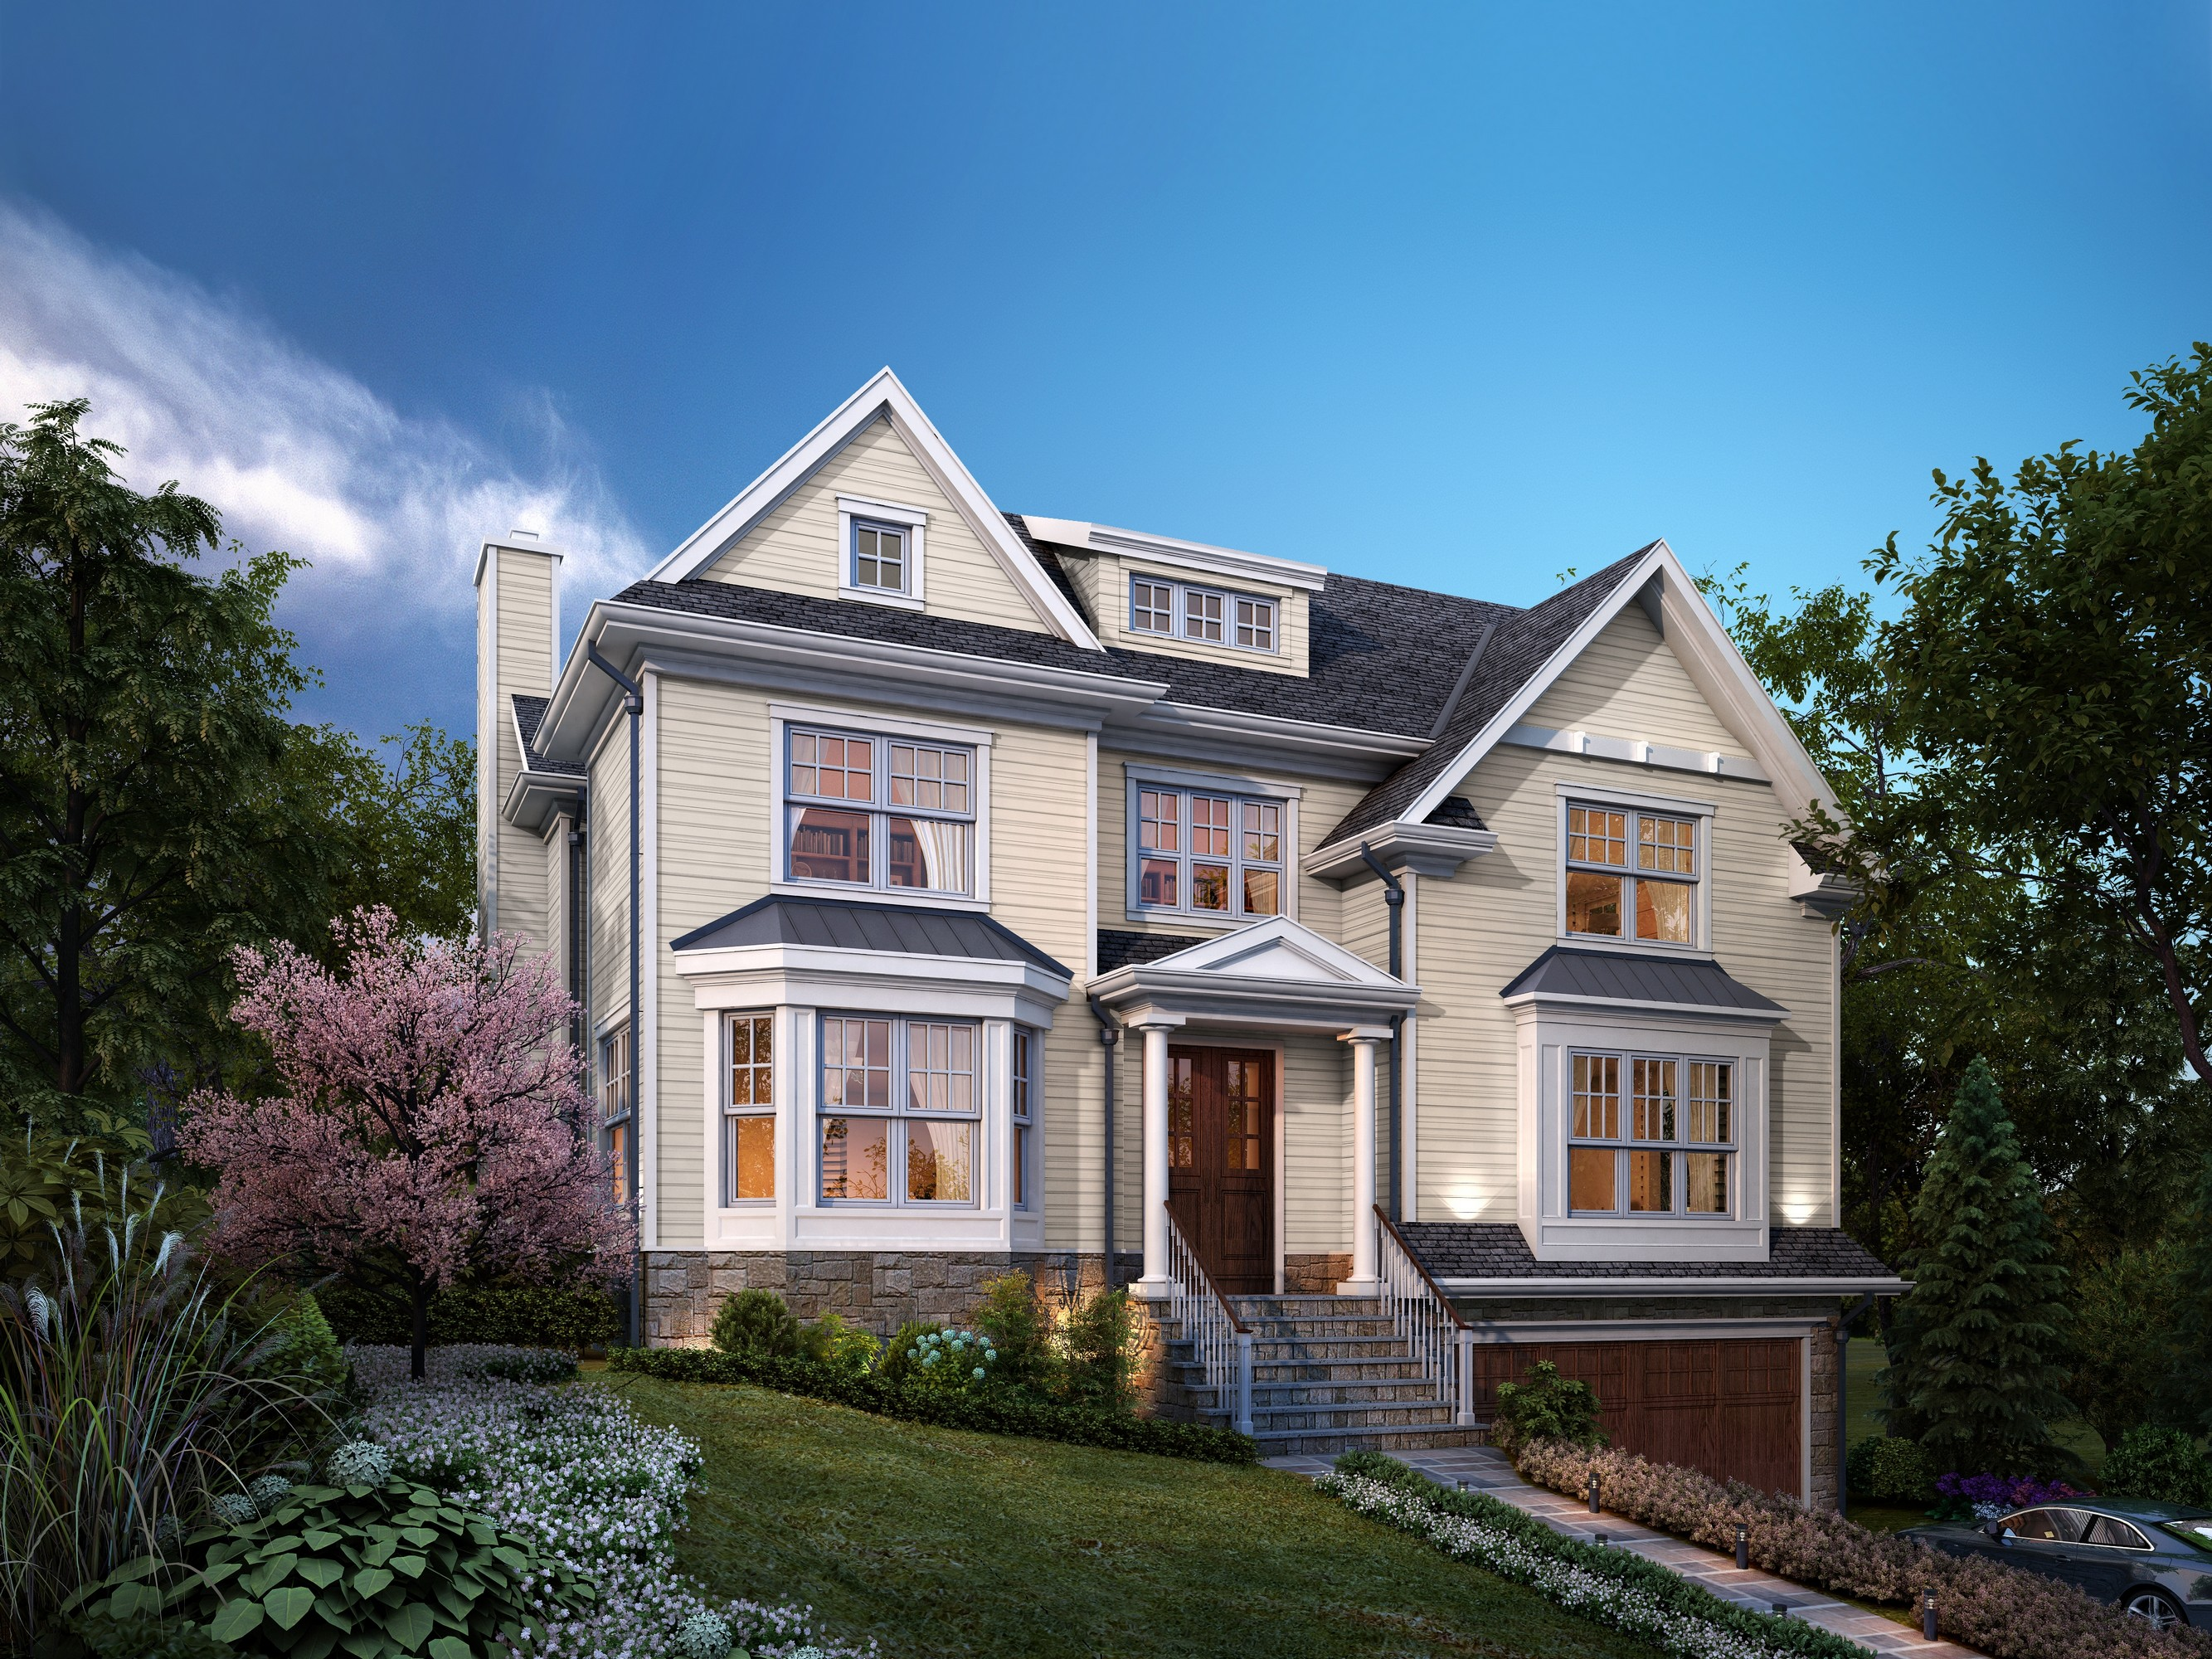 Single Family Home for Sale at New Construction! 32 Rutgers Street Closter, New Jersey 07624 United States